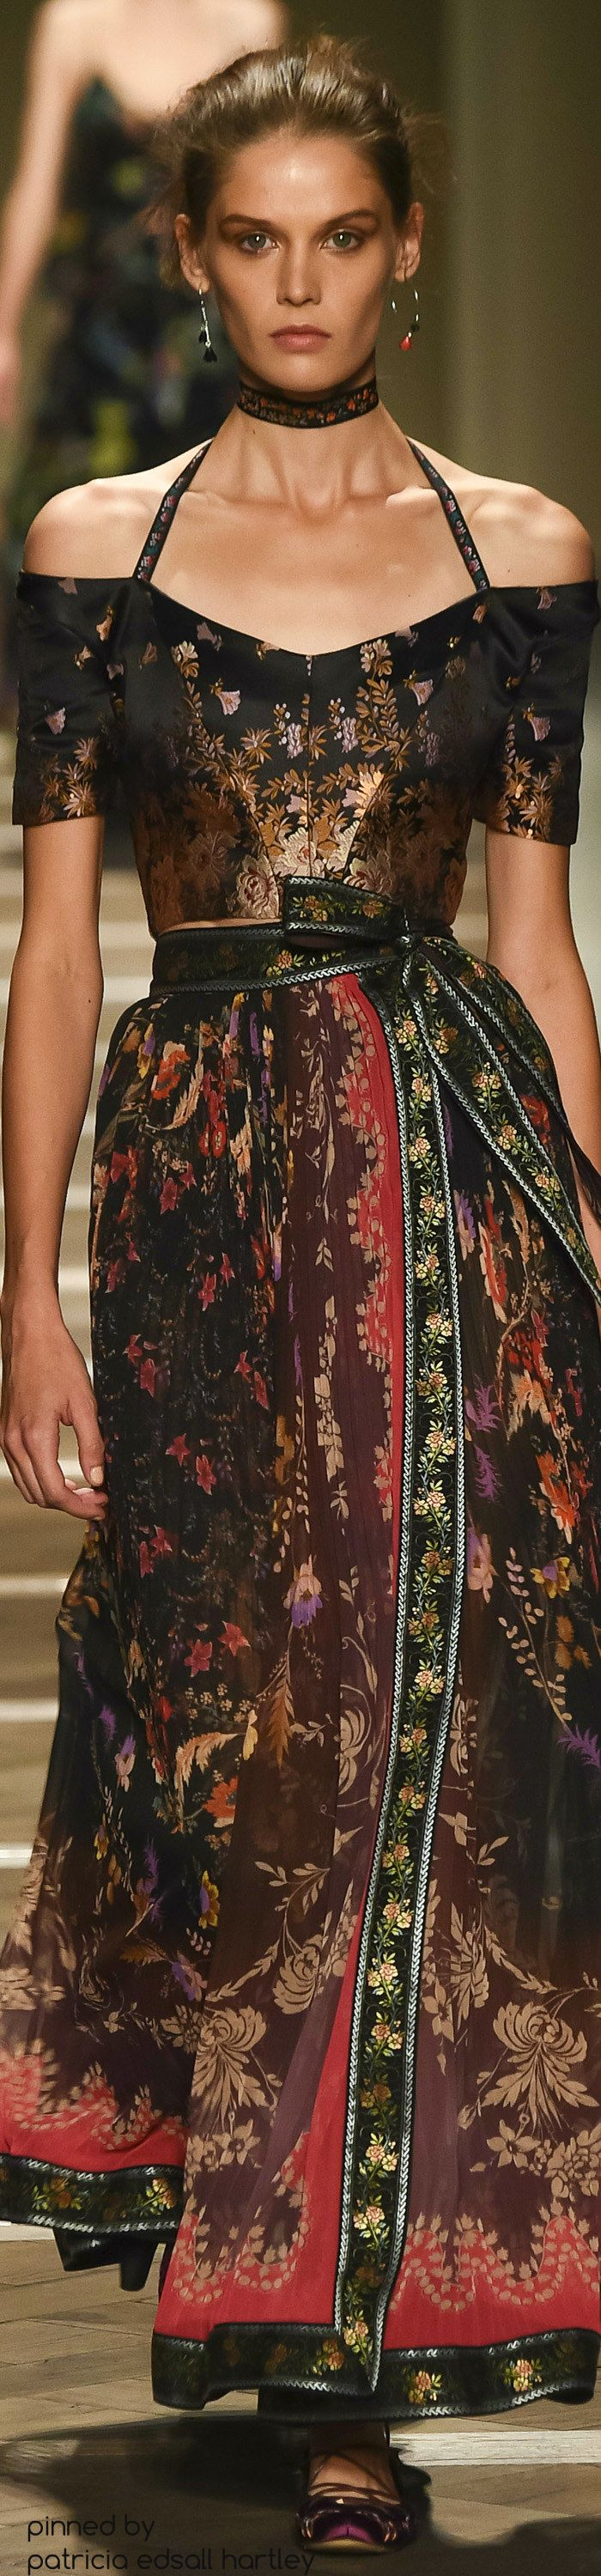 SPRING 2016 READY-TO-WEAR Etro Boho Fashion